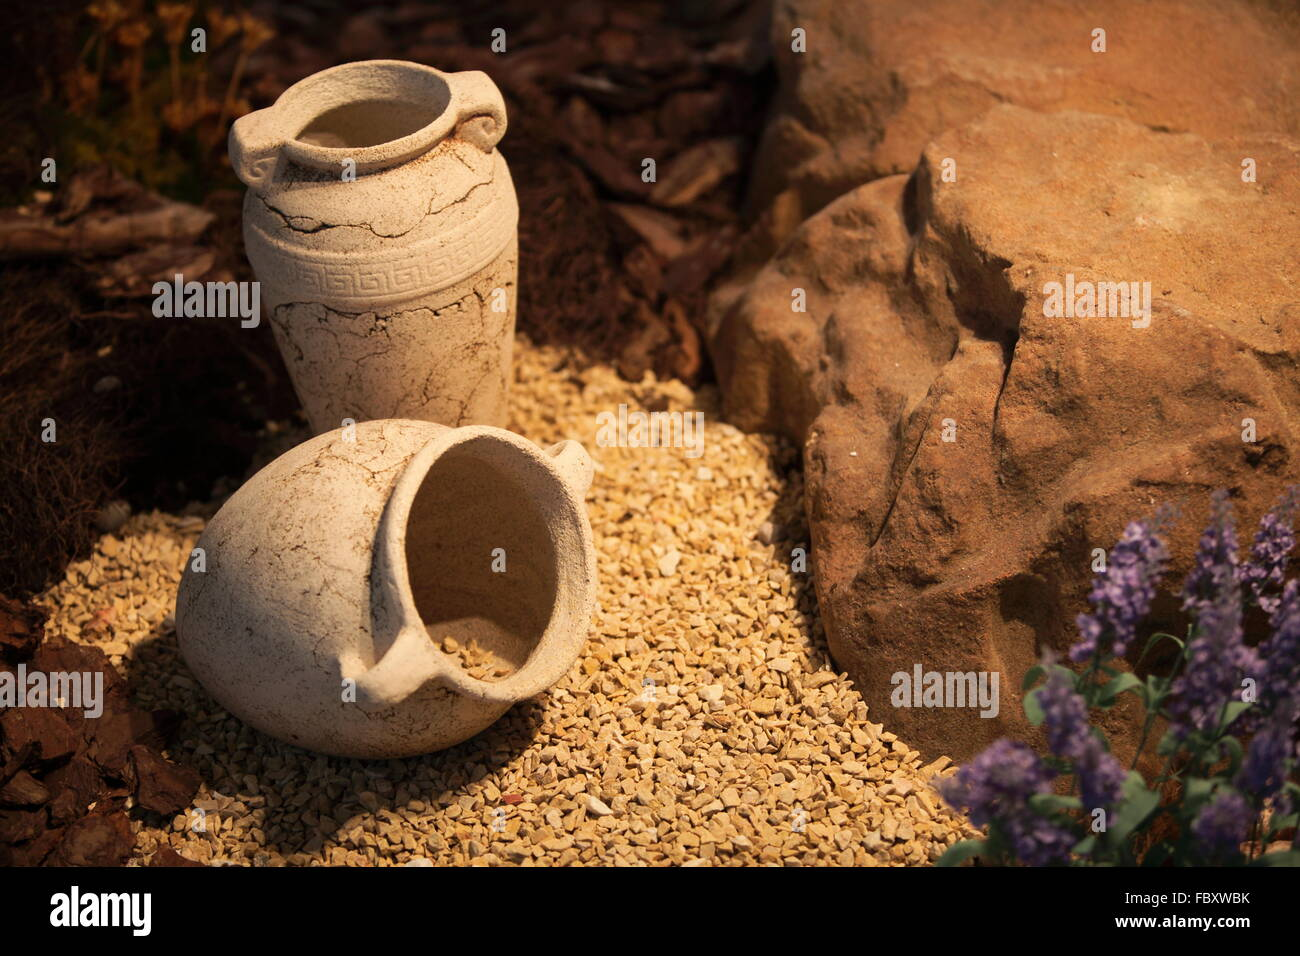 Decorative Jugs And Vases Ceramic Vases Clay Jugs Decoration And Craft Stock Photo Royalty